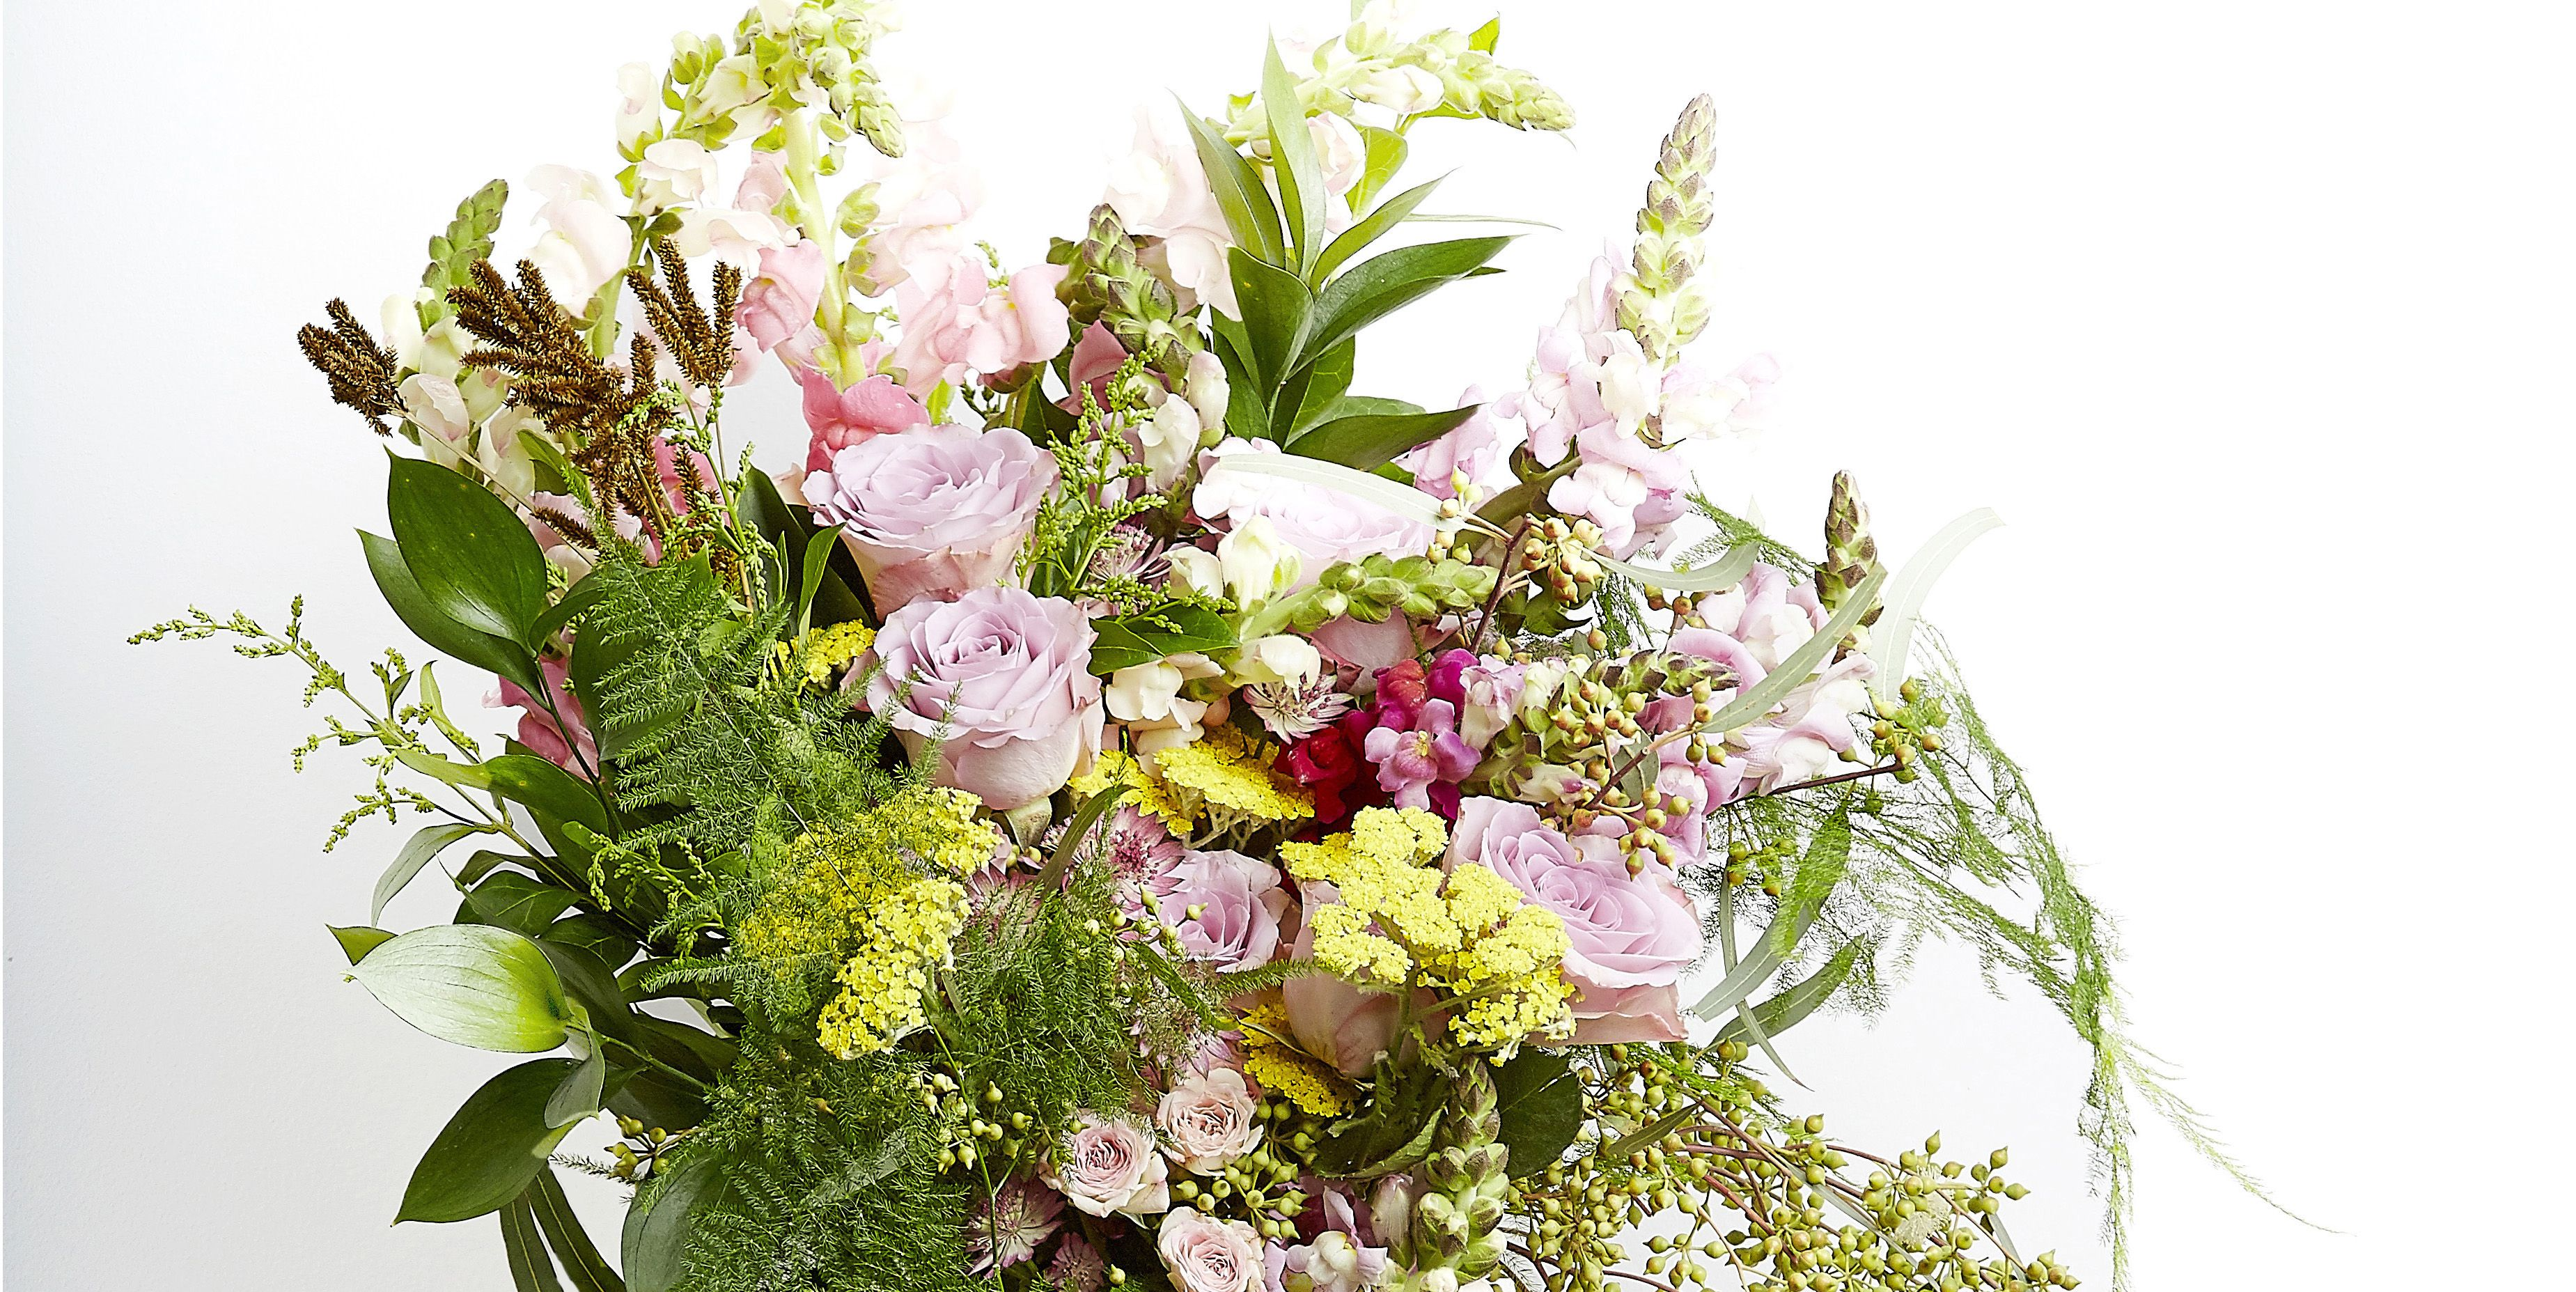 Hayfever-friendly flower bouquet - Grace & Thorn - Funnyhowflowersdothat.co.uk - Flower Council of Holland